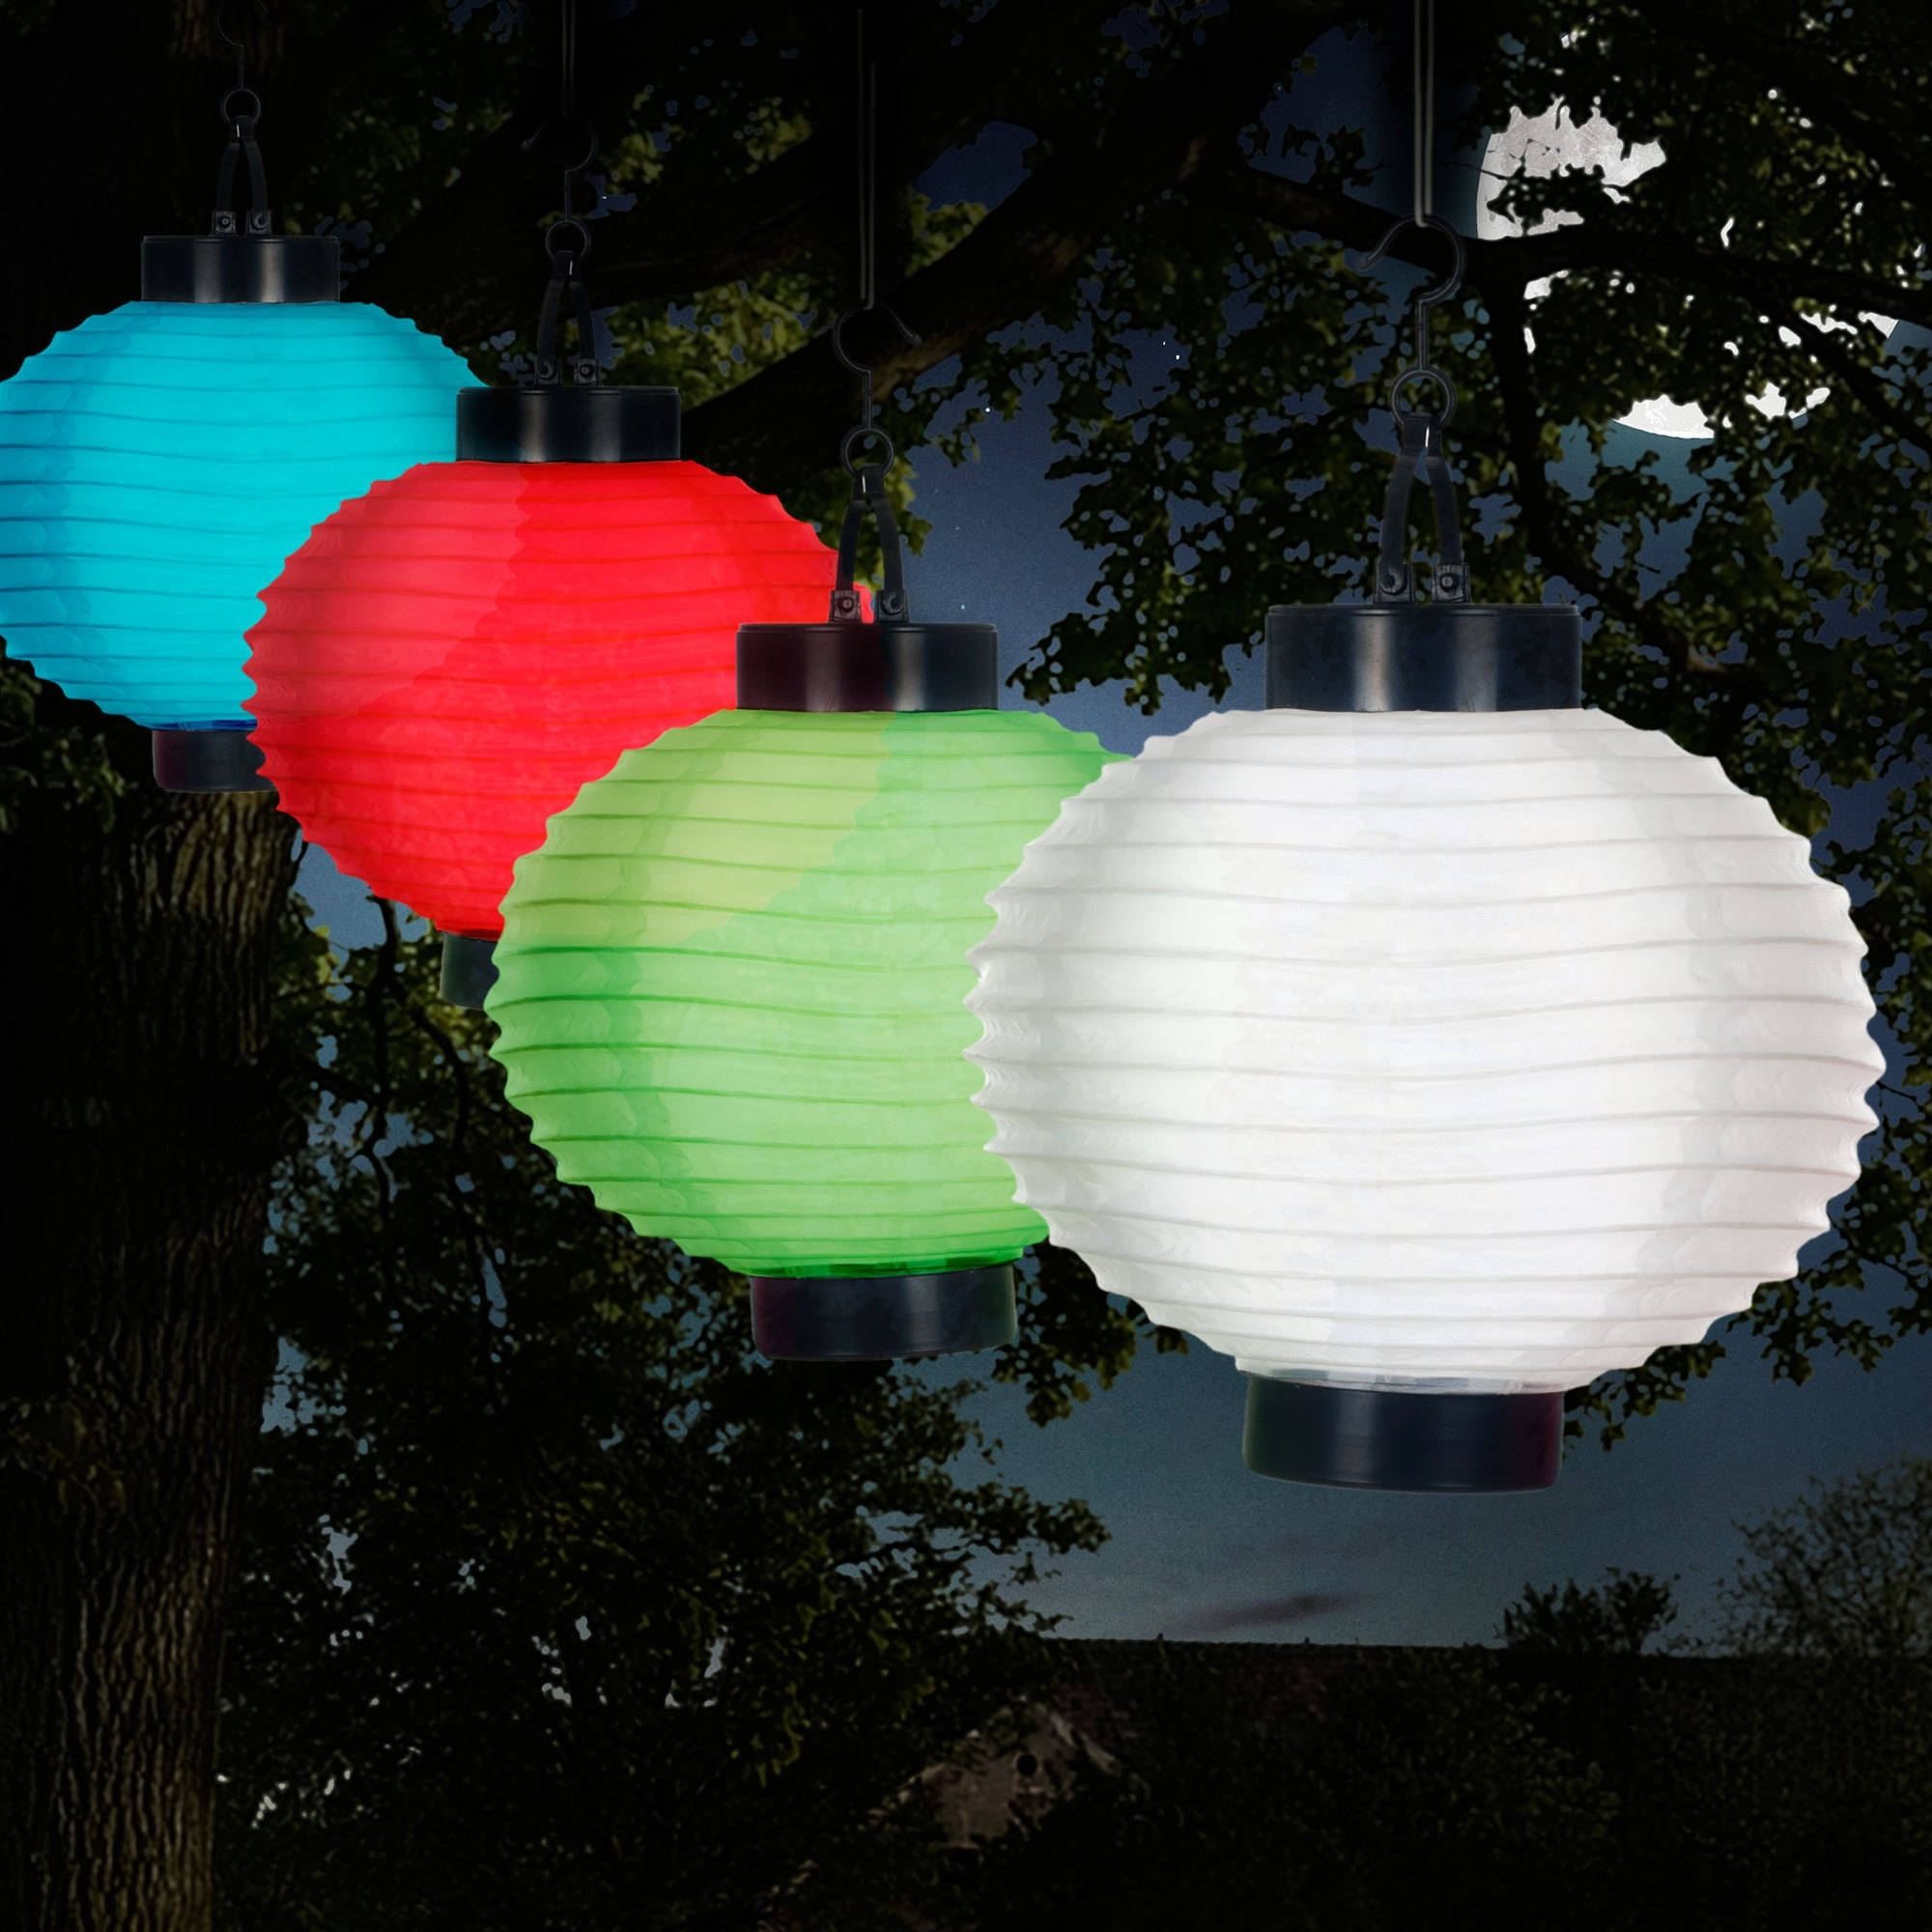 Outdoor Hanging Chinese Lanterns Regarding Most Current Pure Garden Outdoor Solar Chinese Lanterns, Led, Set Of 4 – Walmart (View 5 of 20)